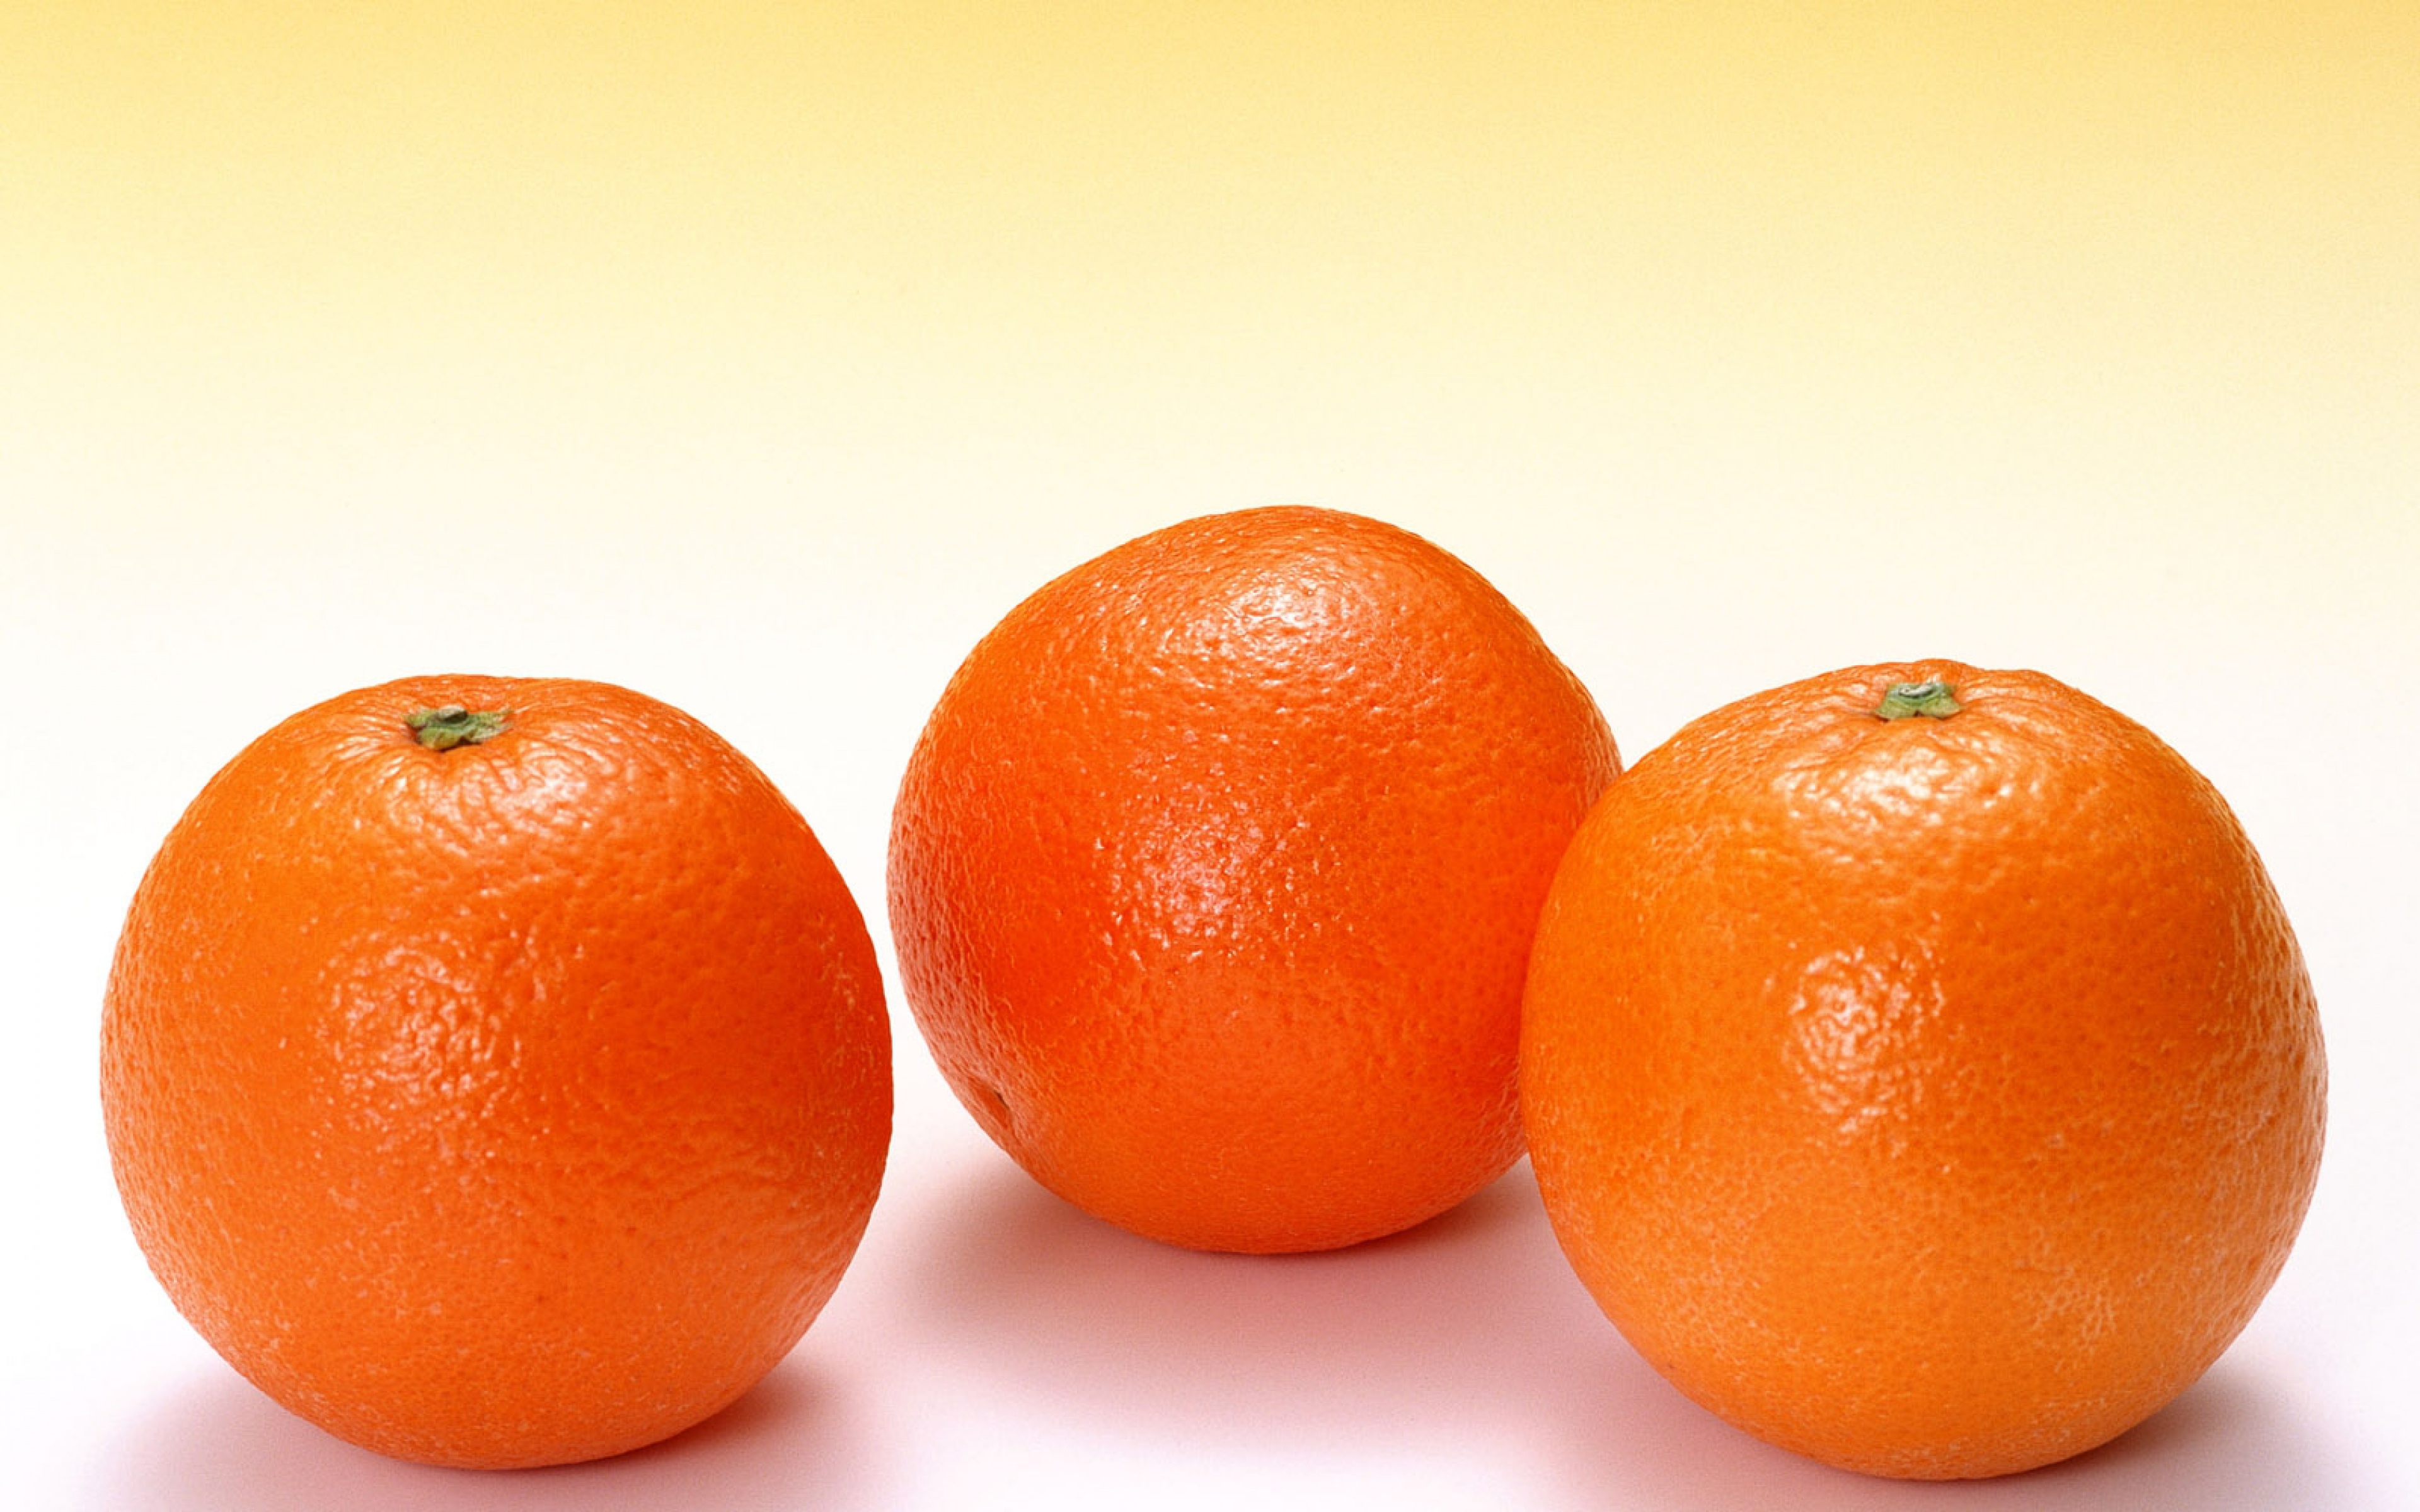 mandarin oranges wallpaper background 54253